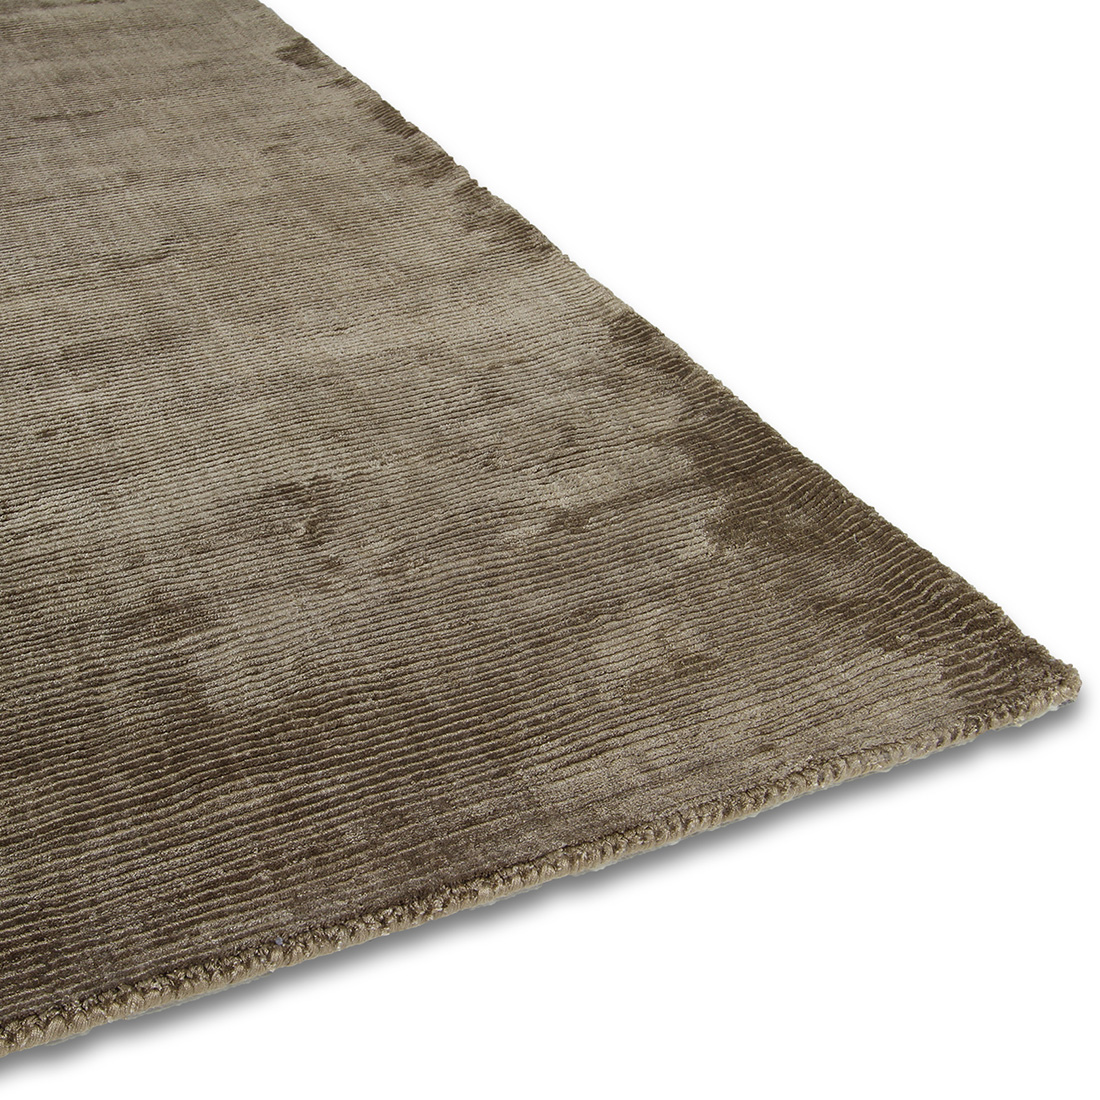 Vloerkleed Brinker Oyster Light Brown | 240 x 340 cm